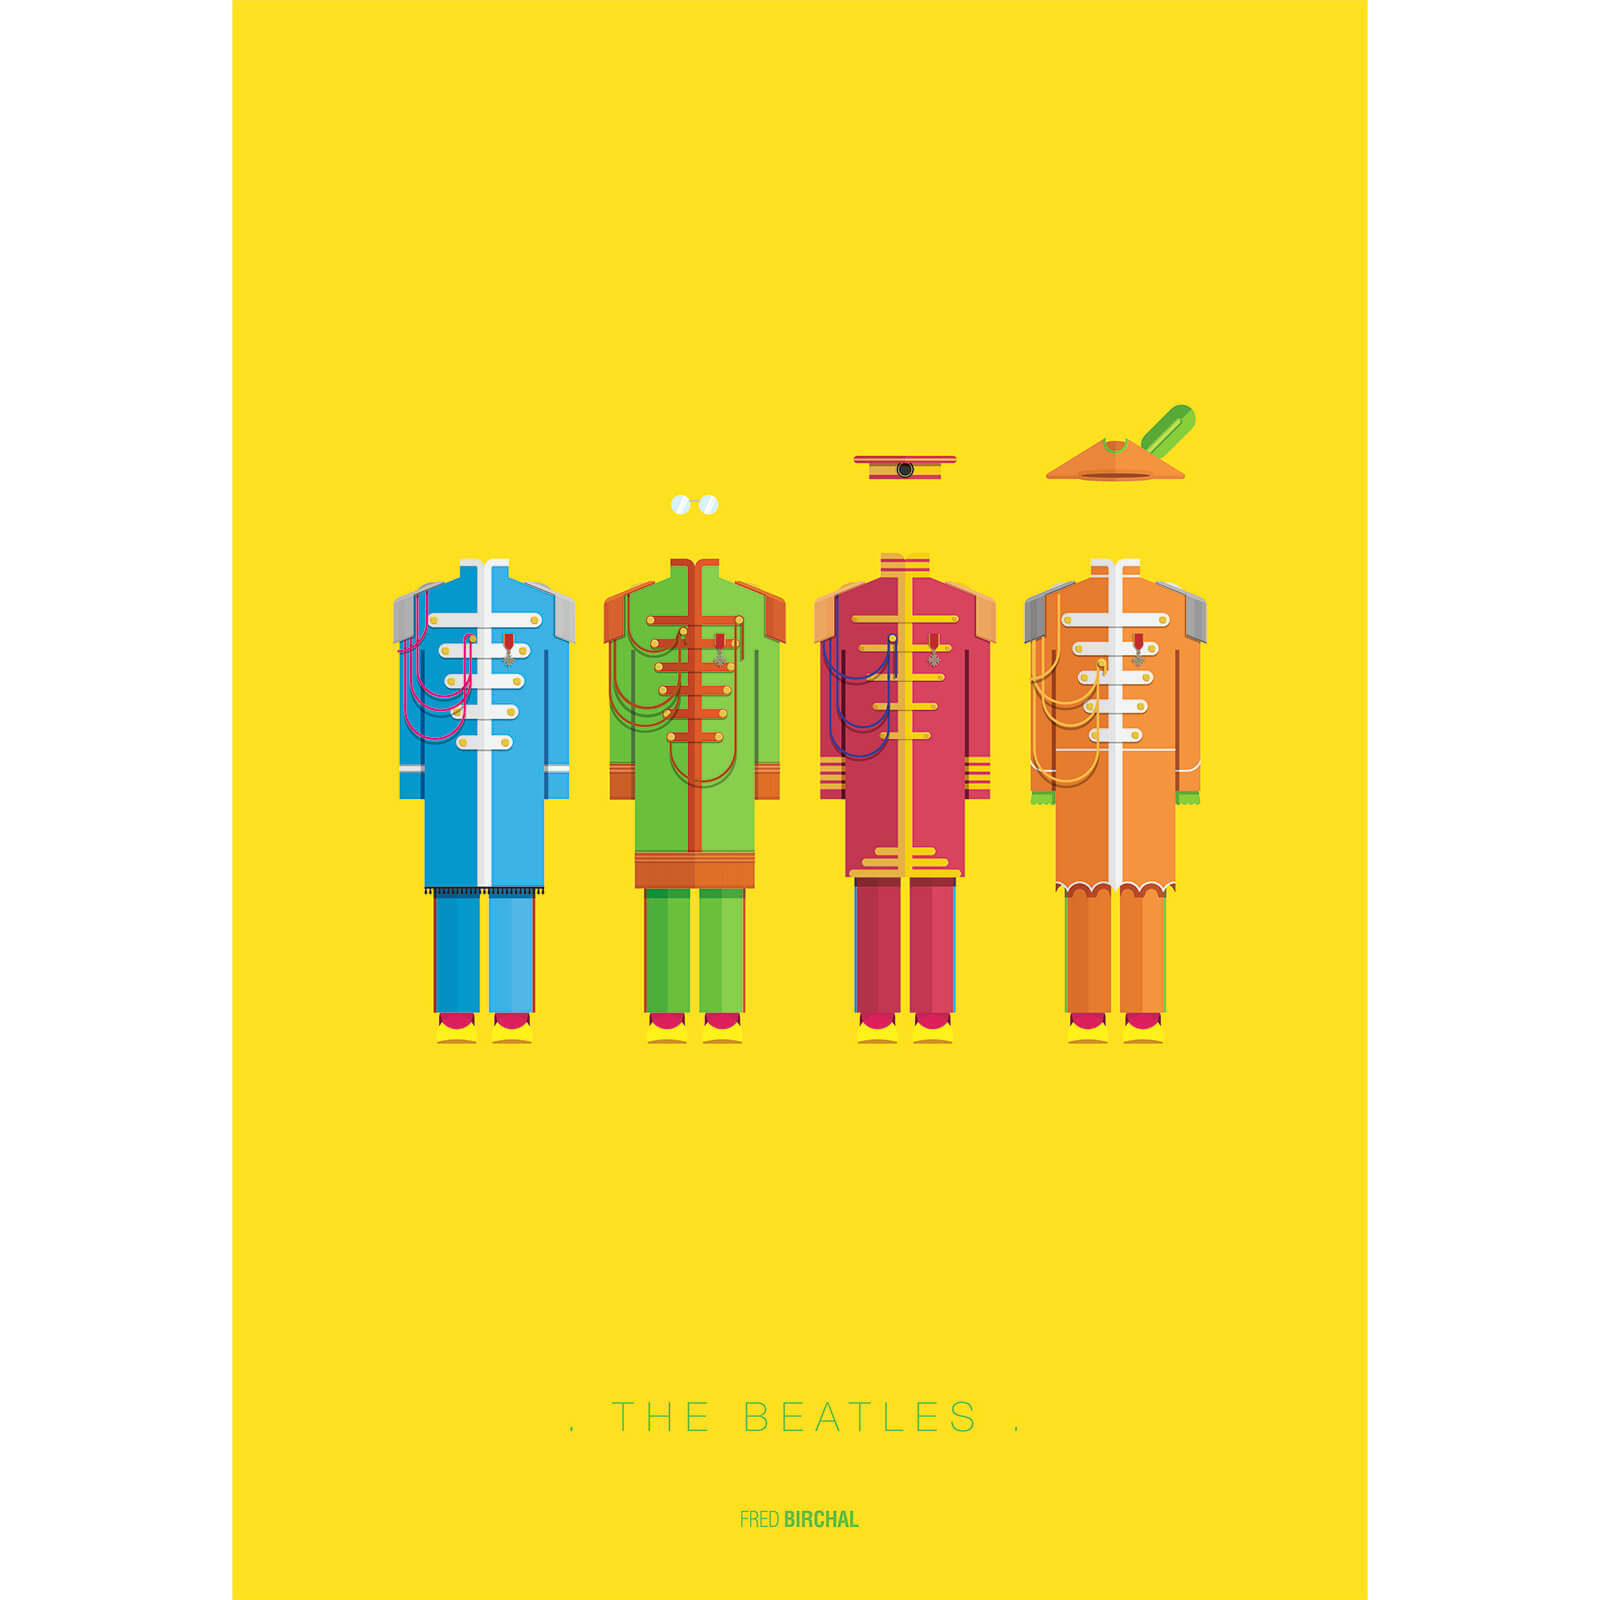 The Beatles Print